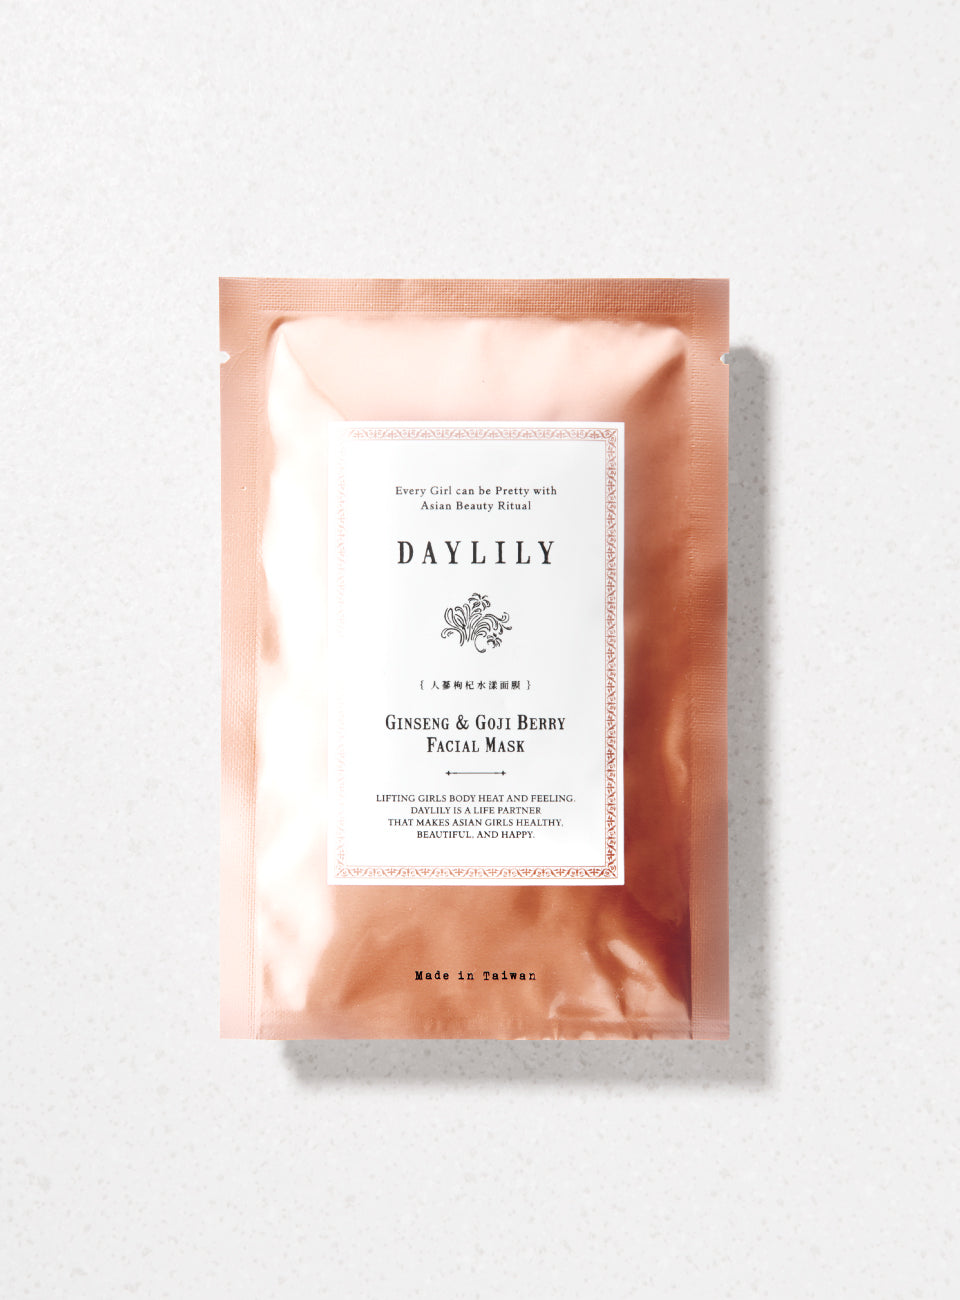 Ginseng & Goji Berry Facial Mask 人蔘枸杞面膜5入組